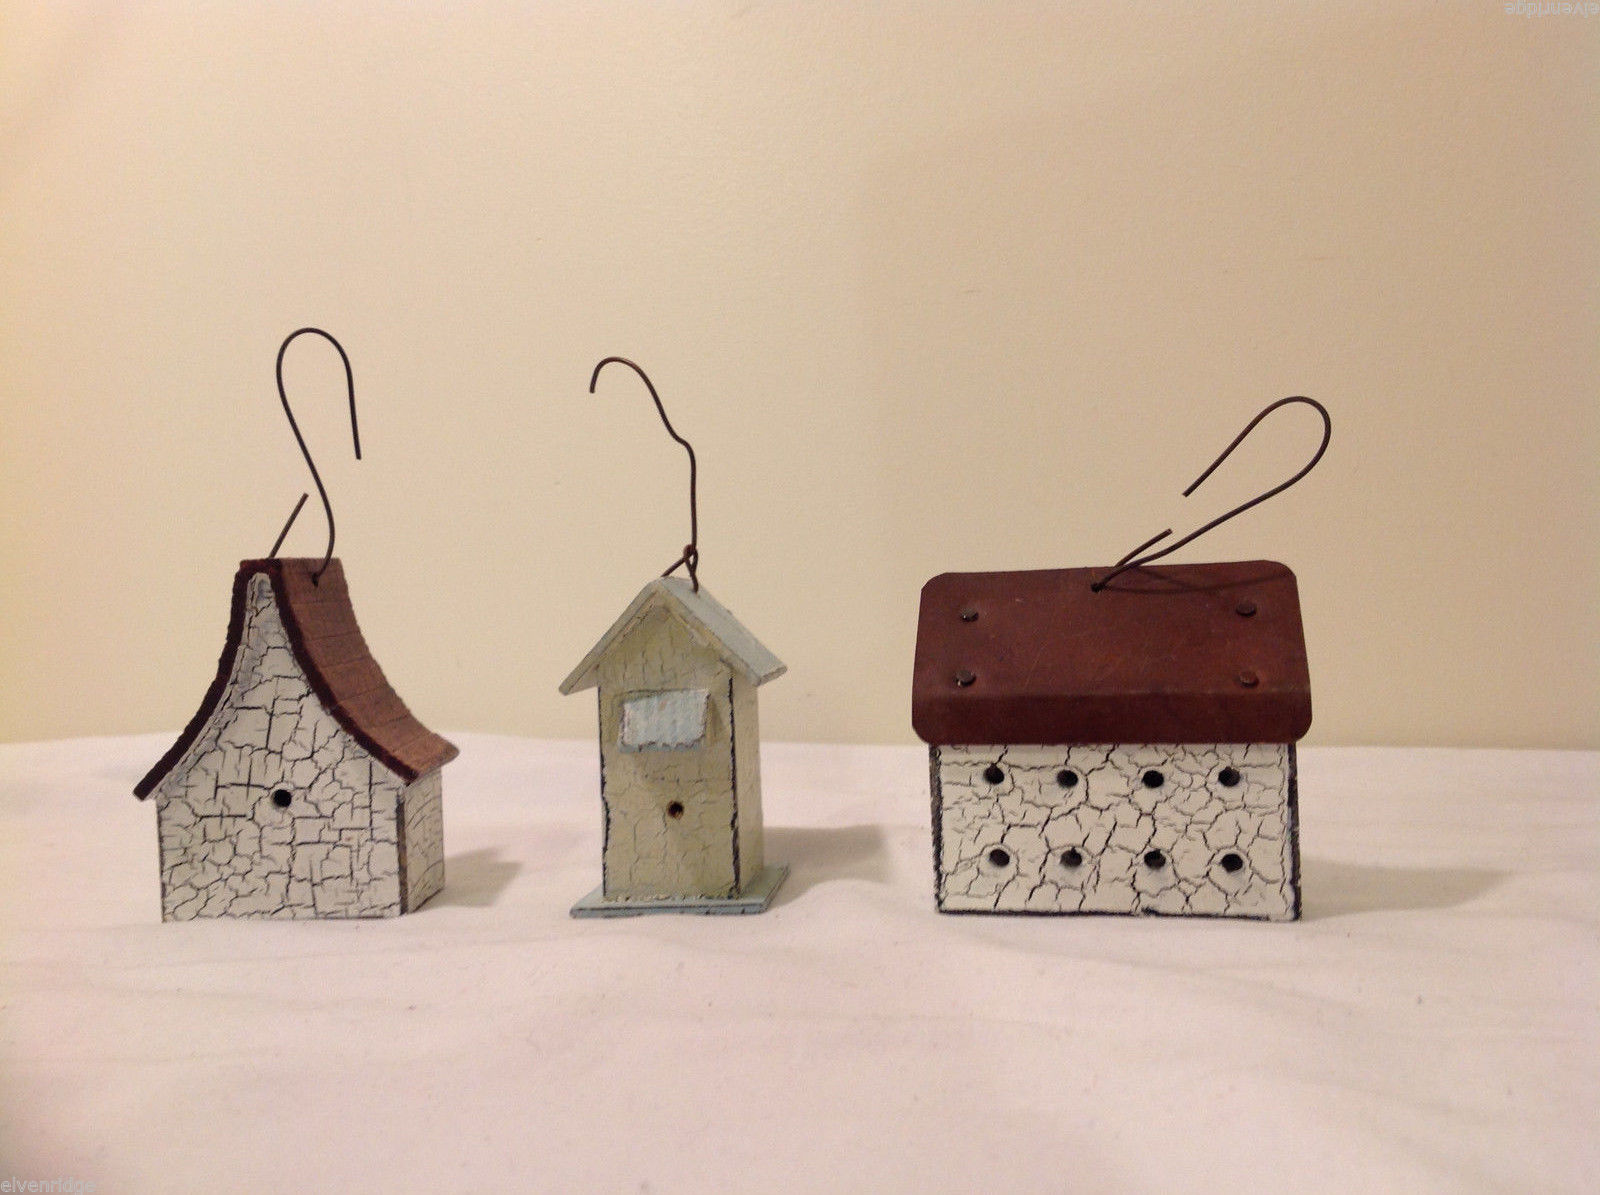 Mixed Lot of 3 Vintage Look Rustic Hand Made Wooden Birdhouse Ornaments